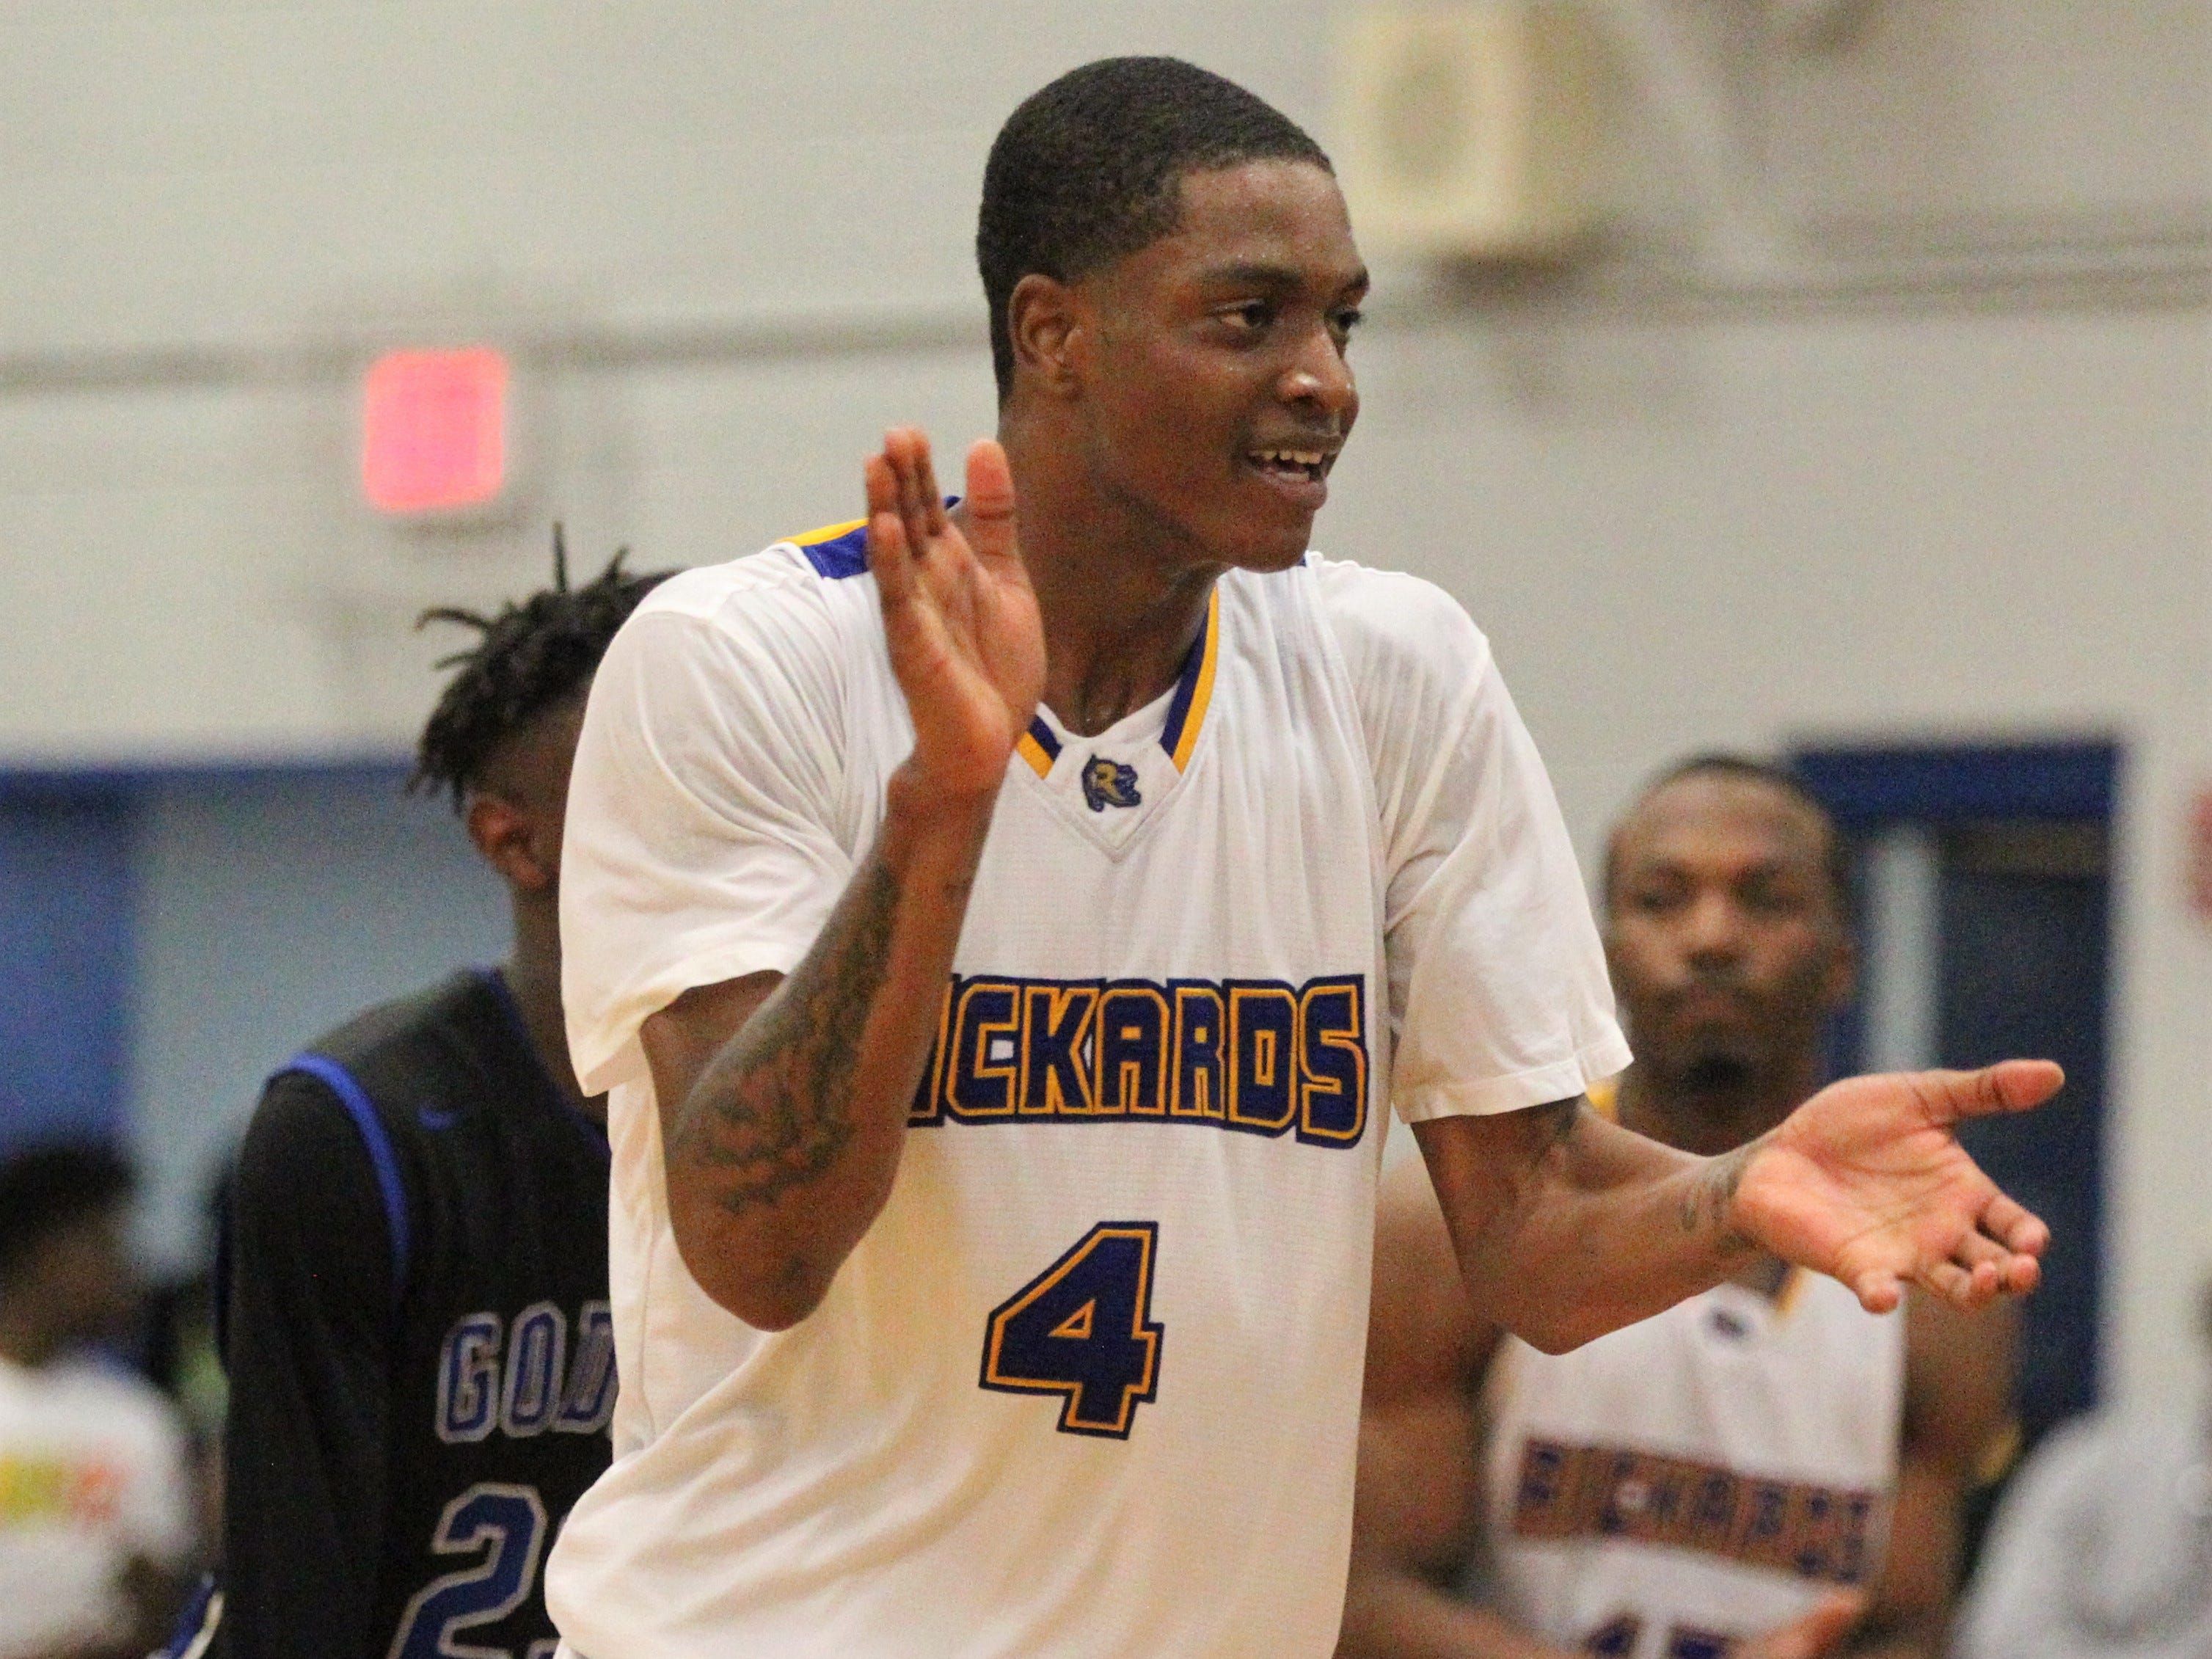 Rickards senior Phillip Russell celebrates after a 3-pointer. Russell scored 21 points and  beat Godby 67-57 at home on Jan. 11, 2019.